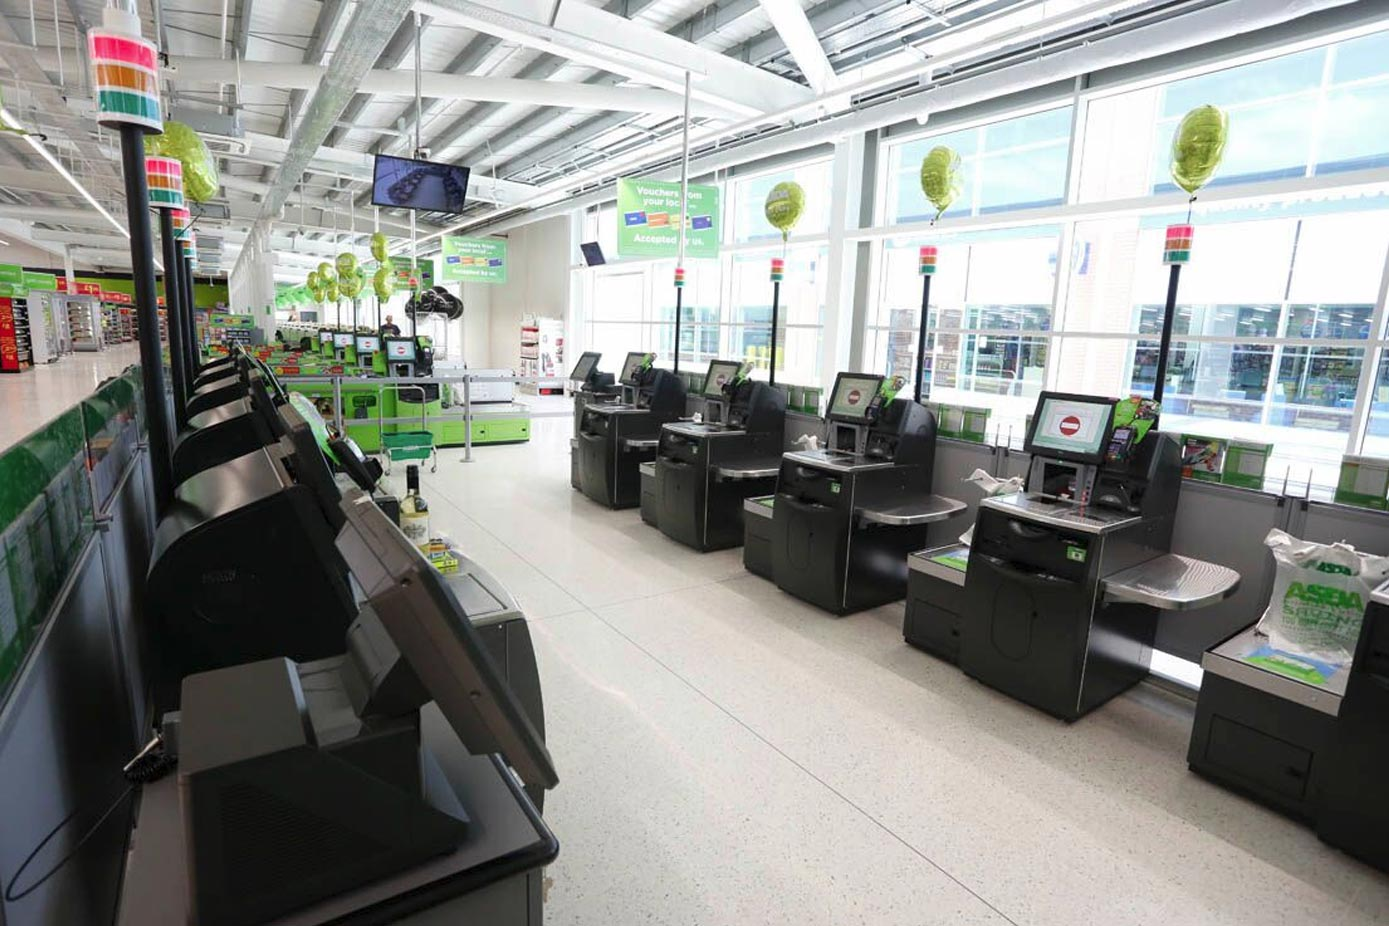 Inside Asda in Shirley